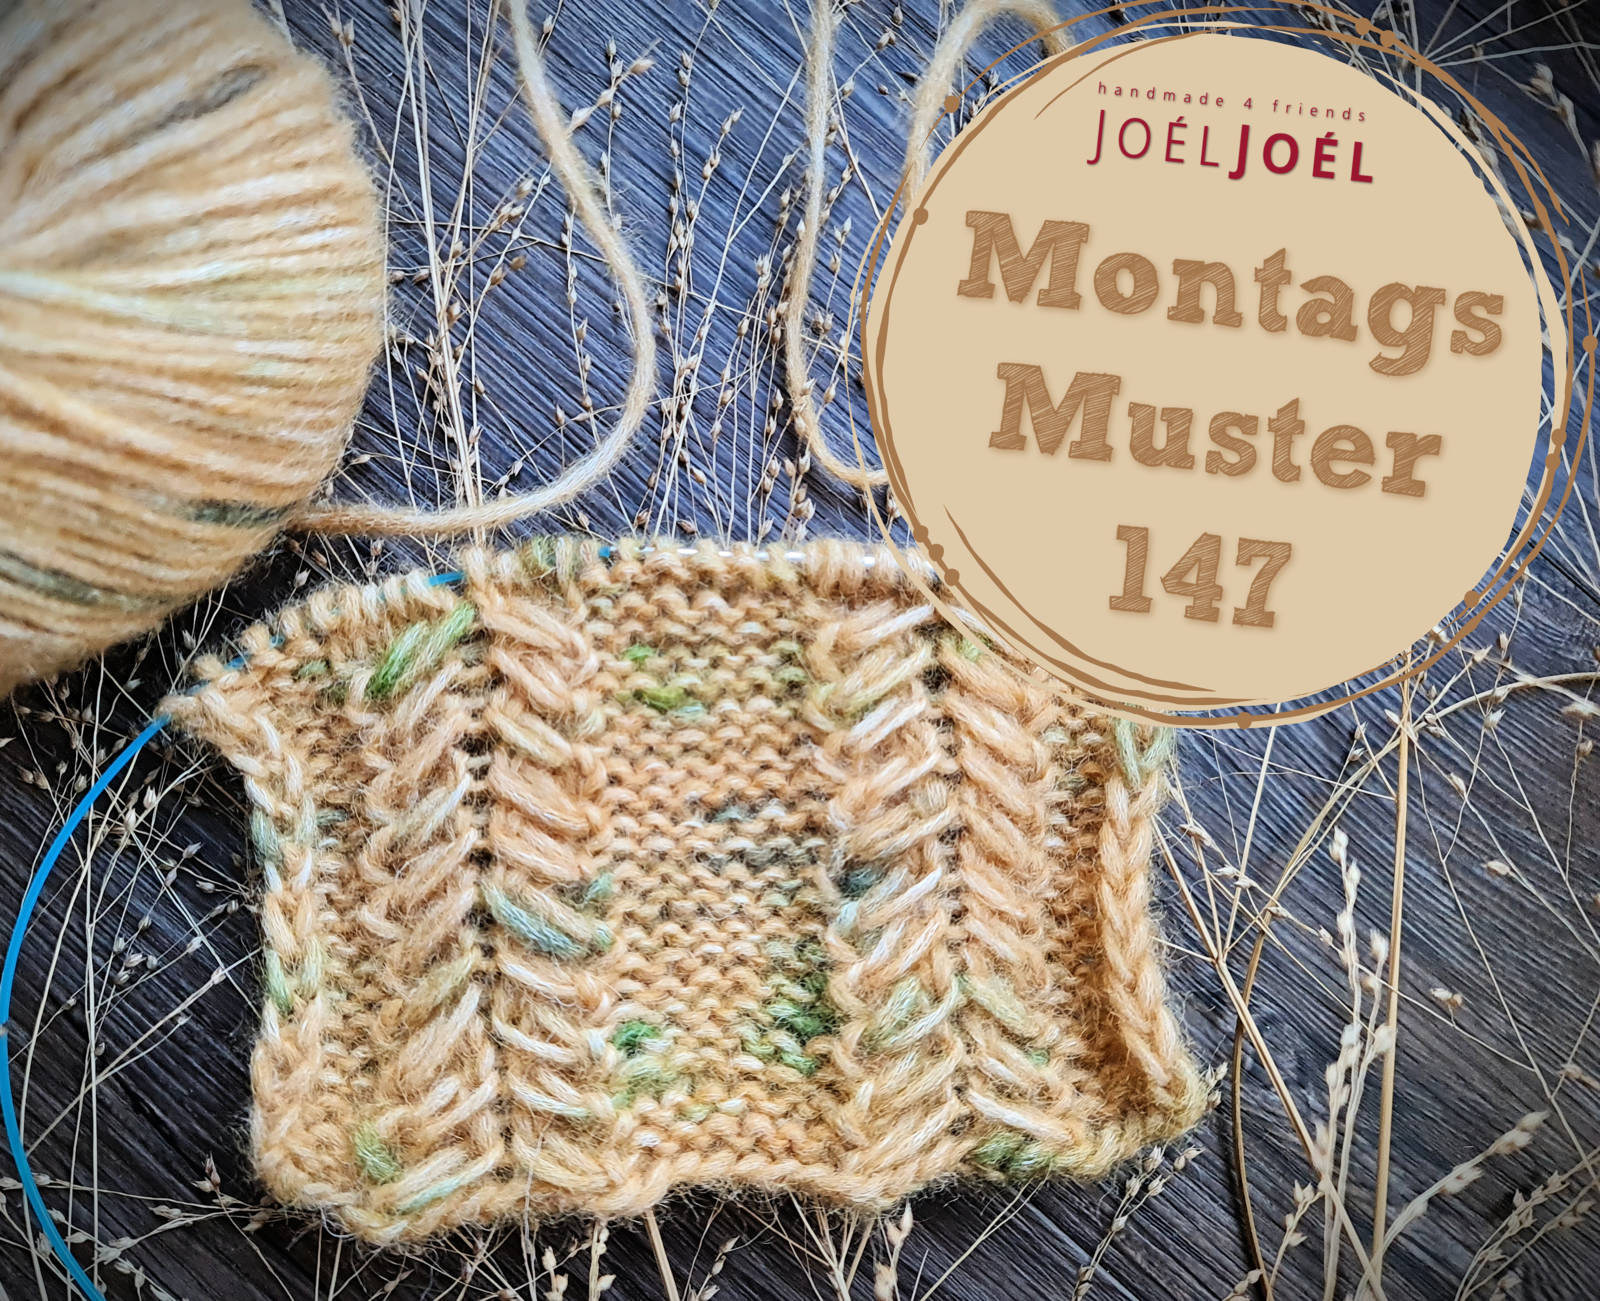 Montagsmuster, stricken, Strickmuster, DIY, stricken, Wolle